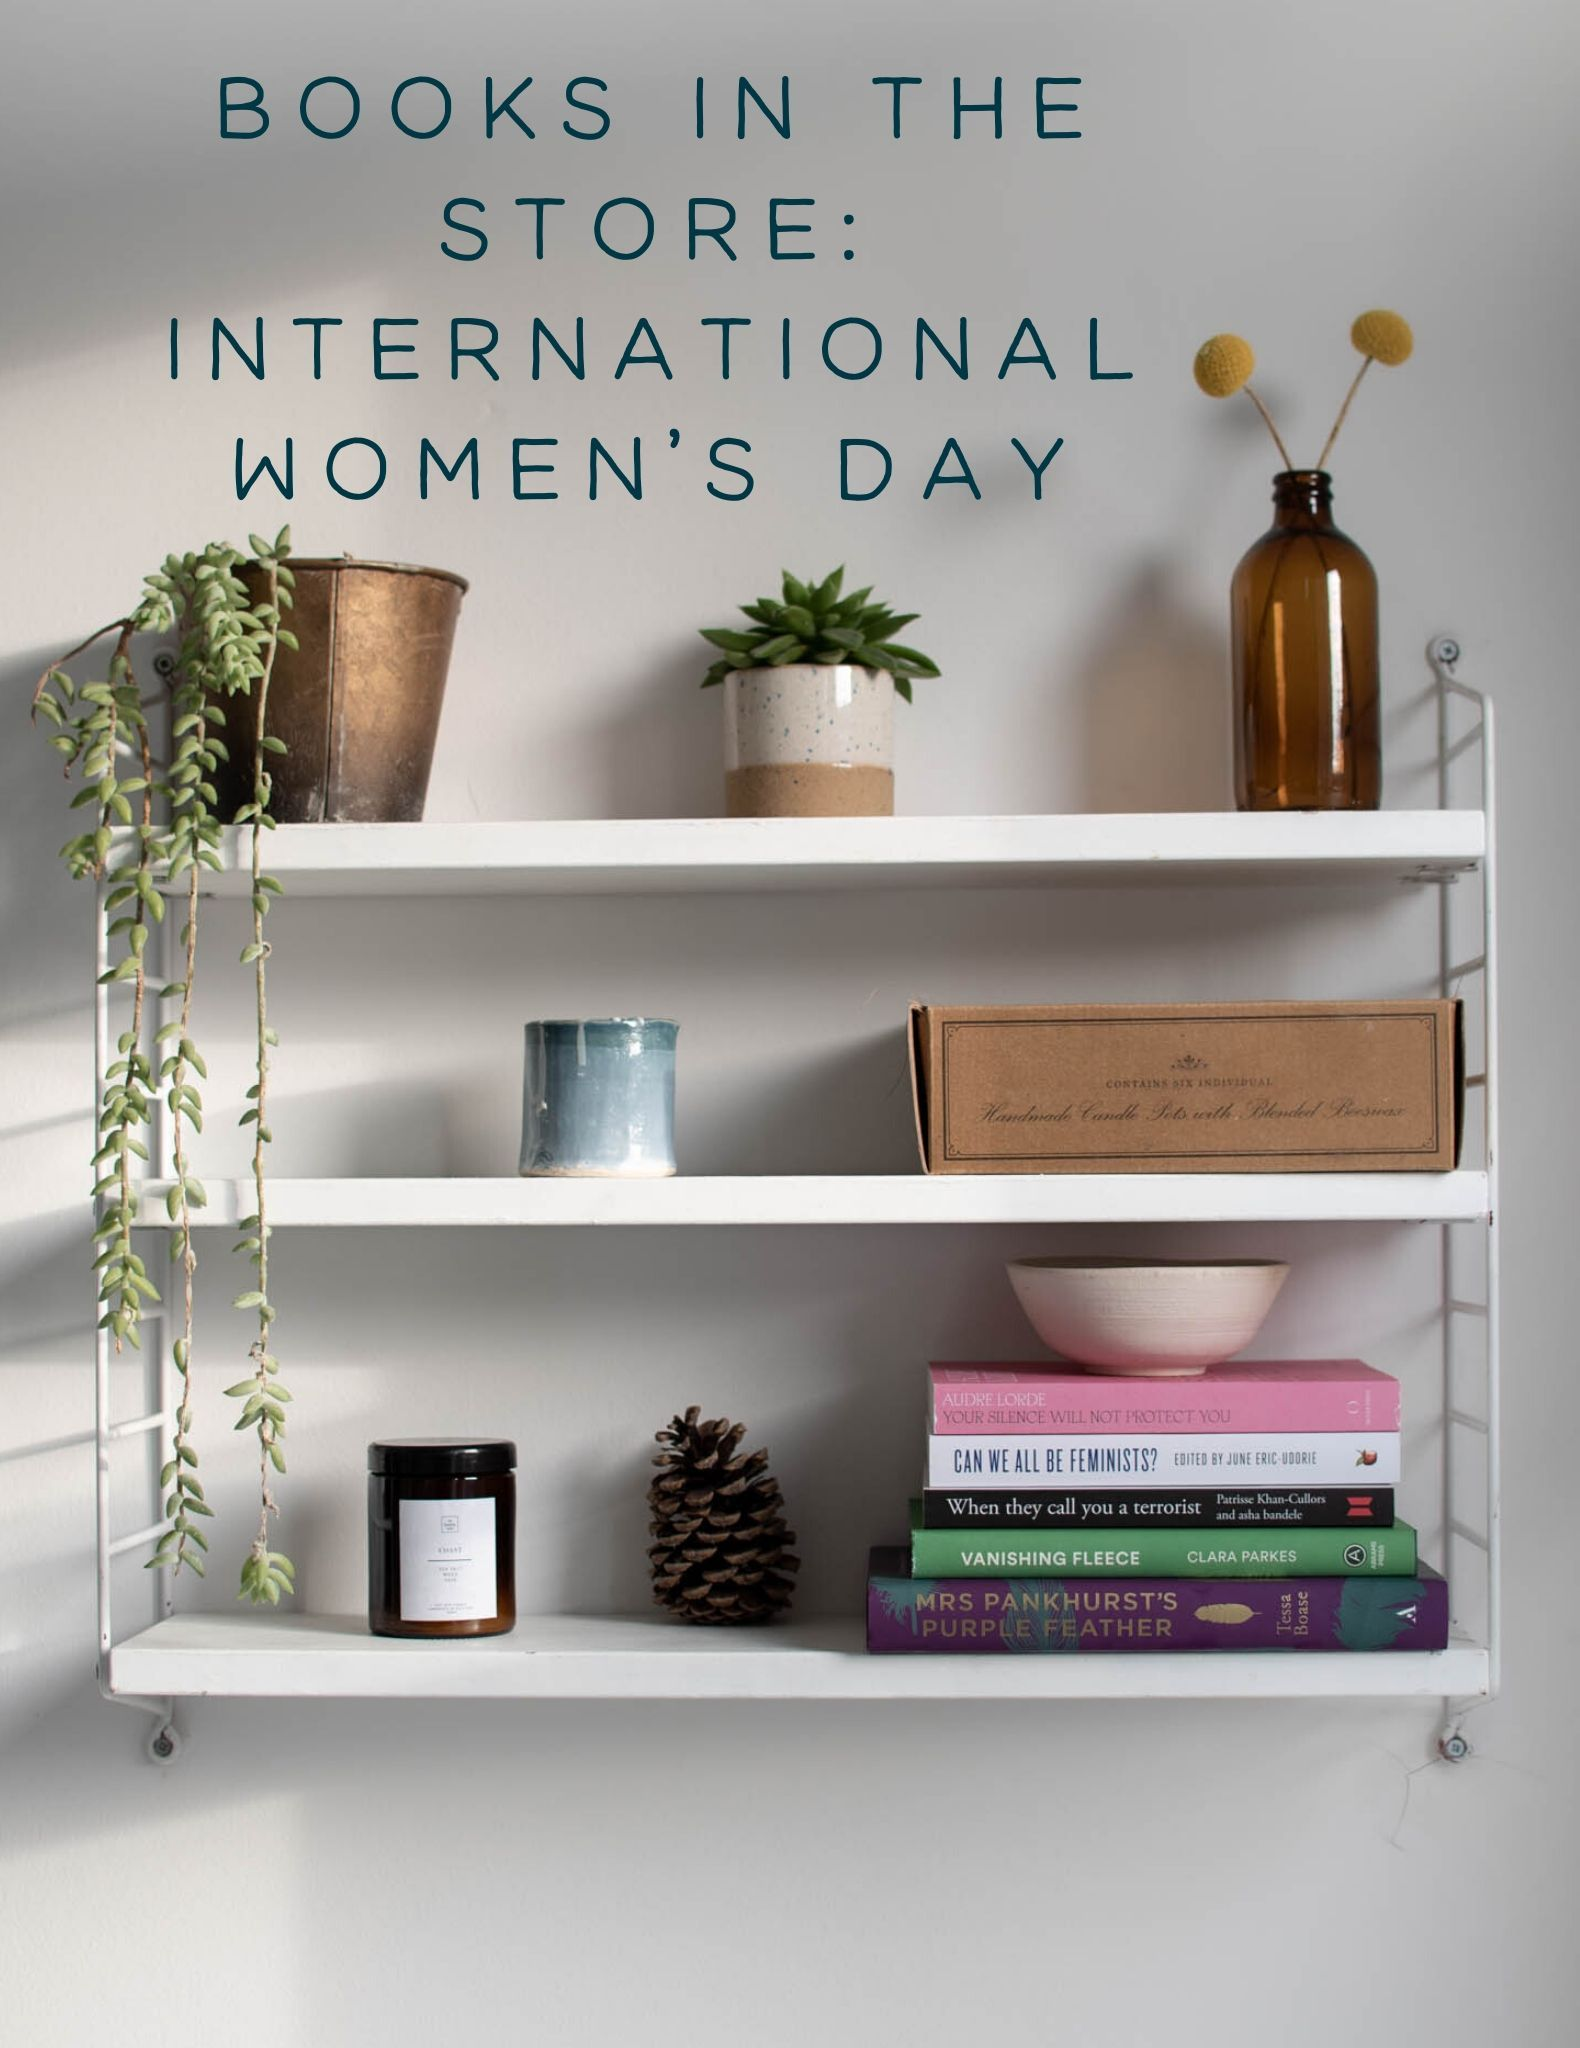 Books in the Store: International Women's Day